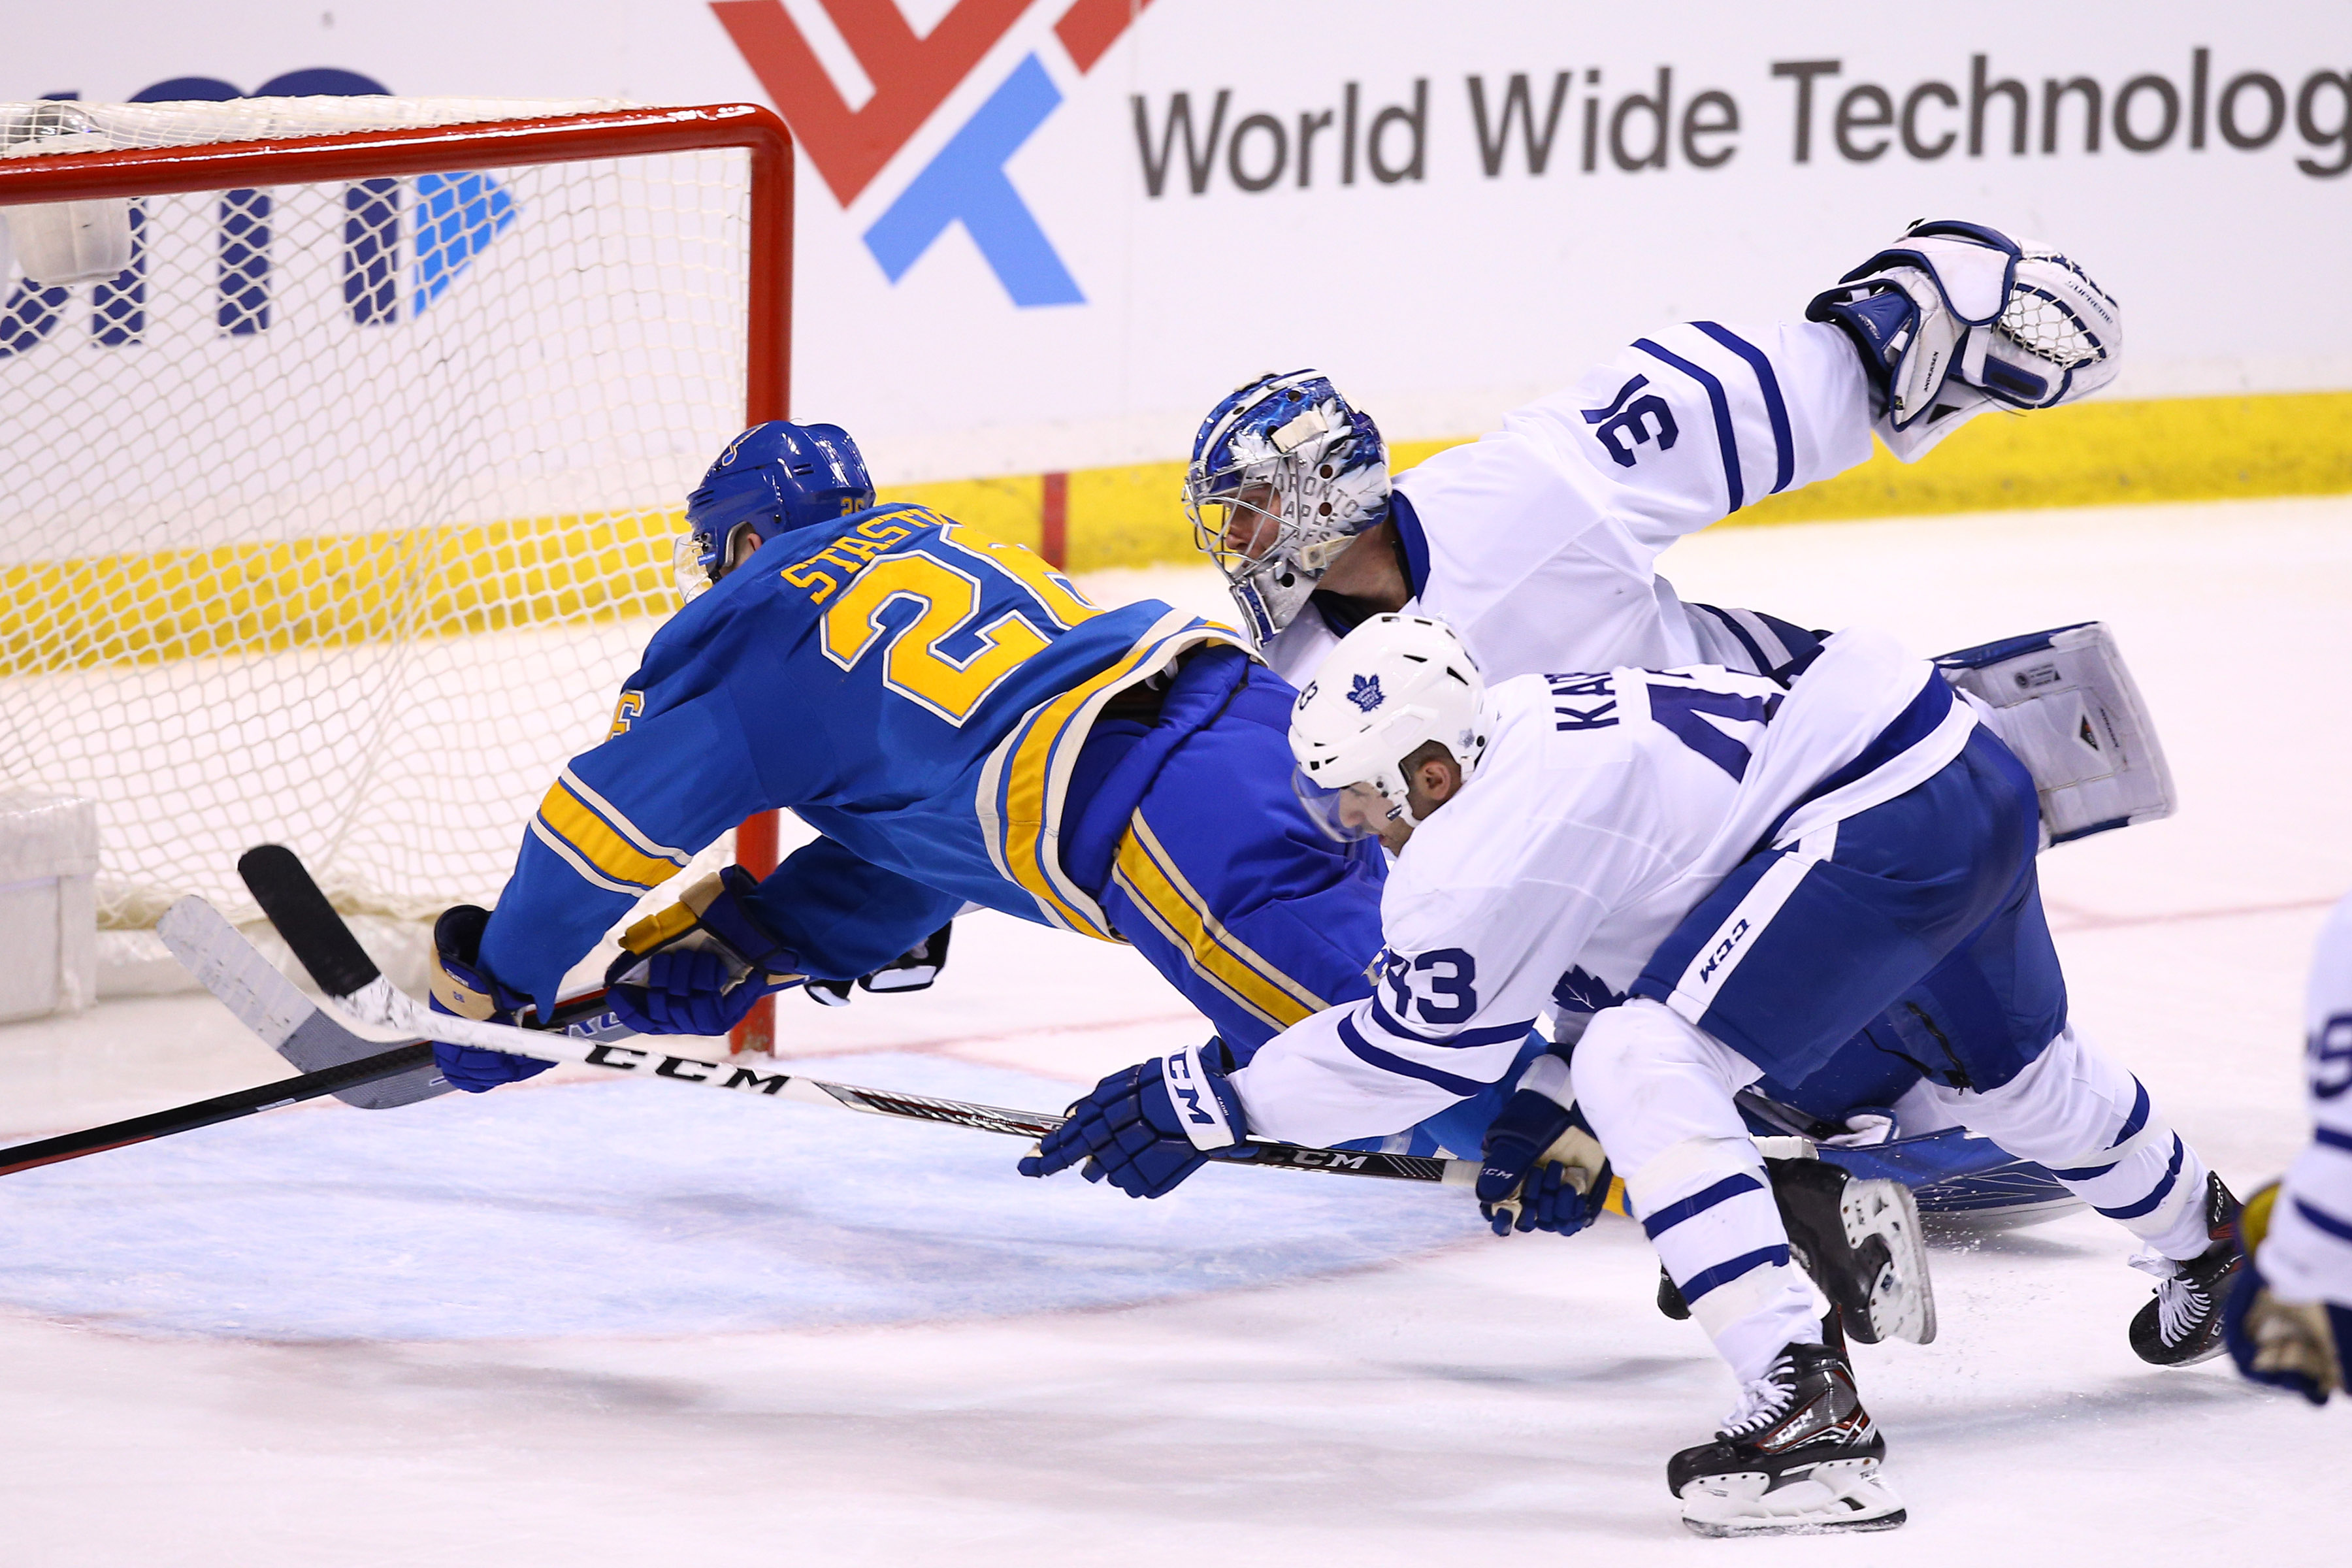 9854889-nhl-toronto-maple-leafs-at-st.-louis-blues